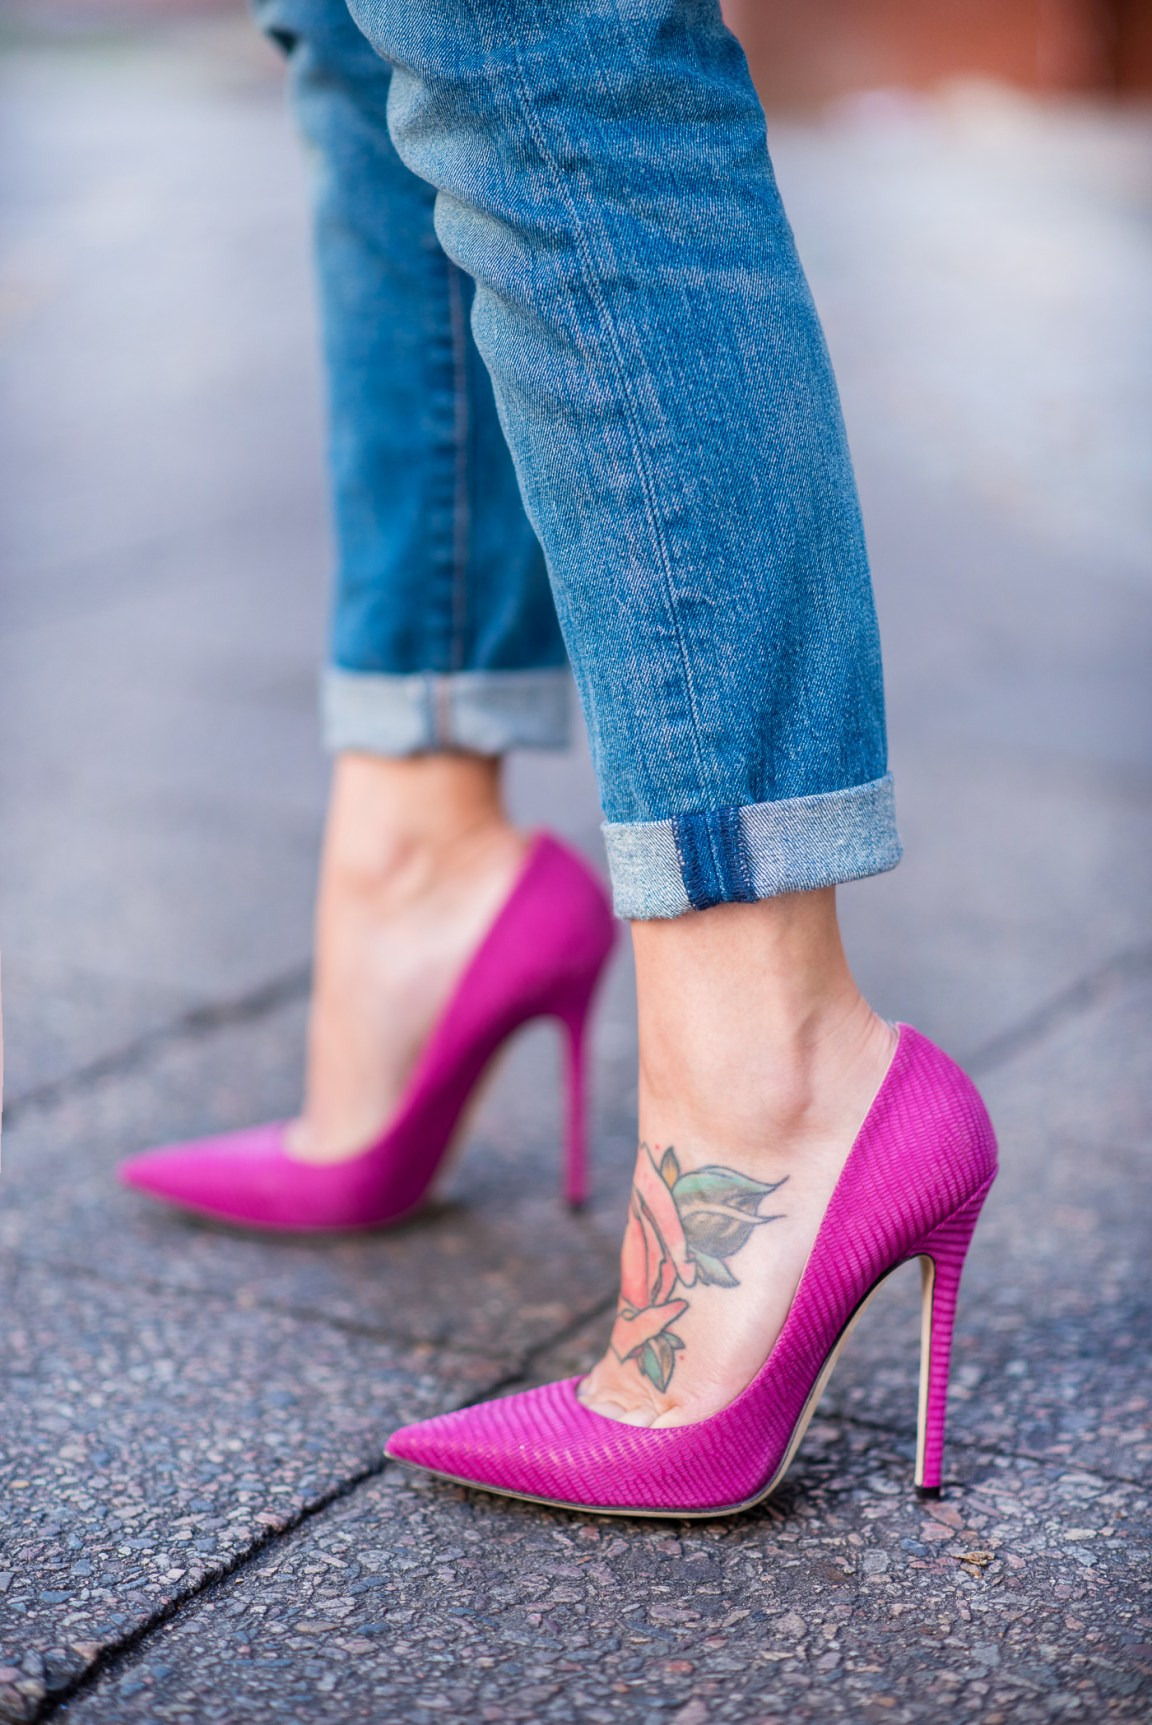 New_York_Touch_Of_Pink_Jimmy_Choo_8